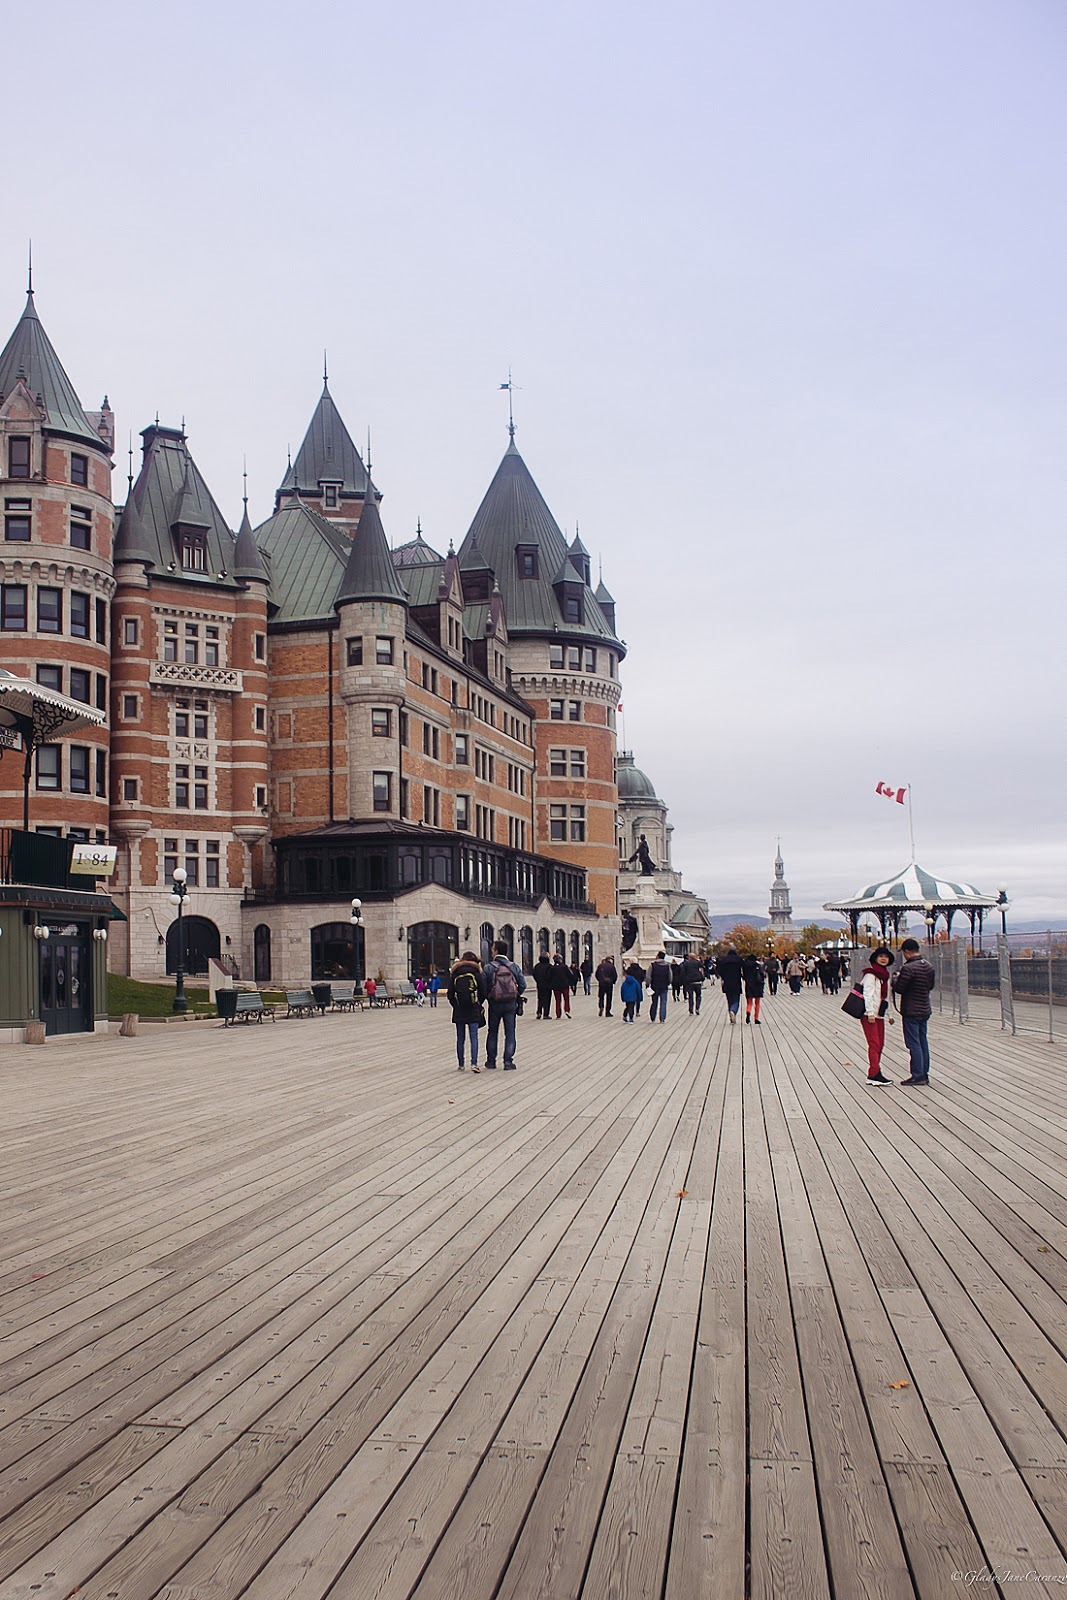 Fairmont Le Château Frontenac: Things To Do in Old Quebec